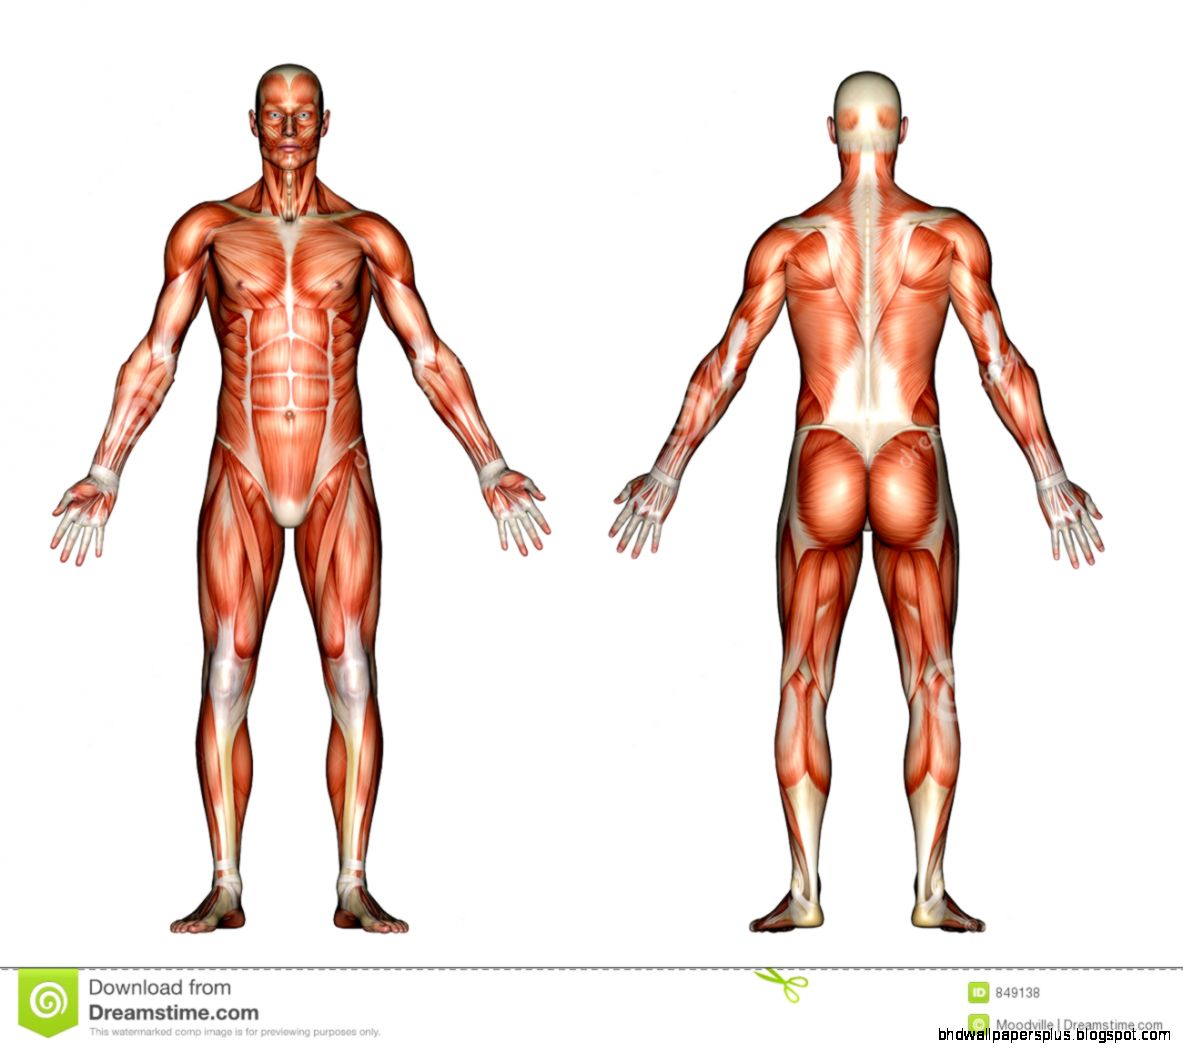 Illustration   Male Anatomy Royalty Free Stock Photos   Image 849138